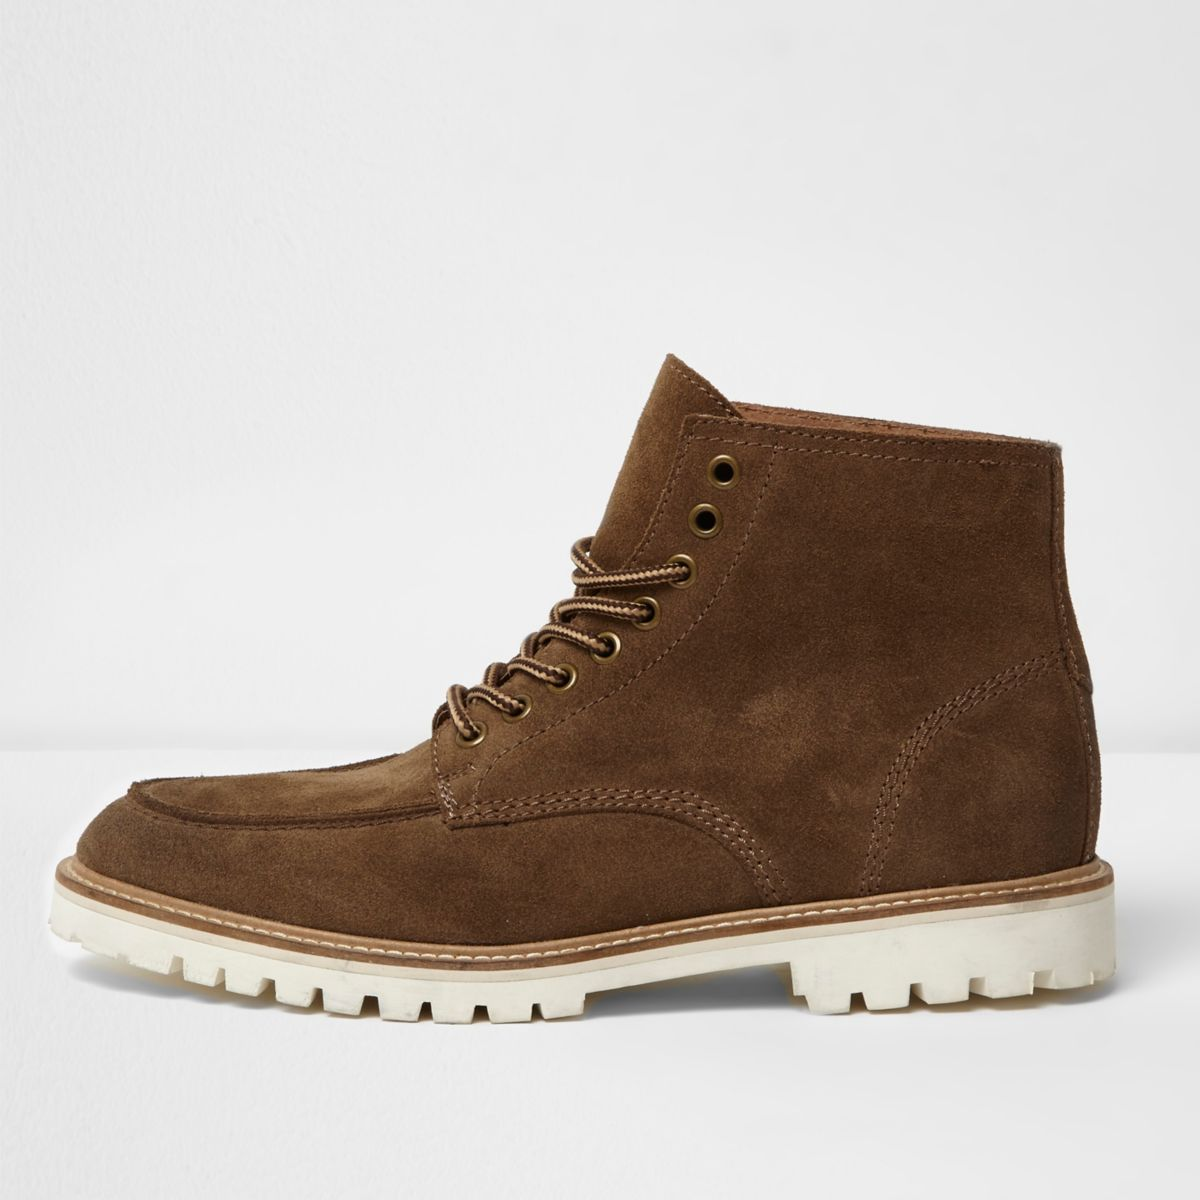 Brown suede cleated sole work boots